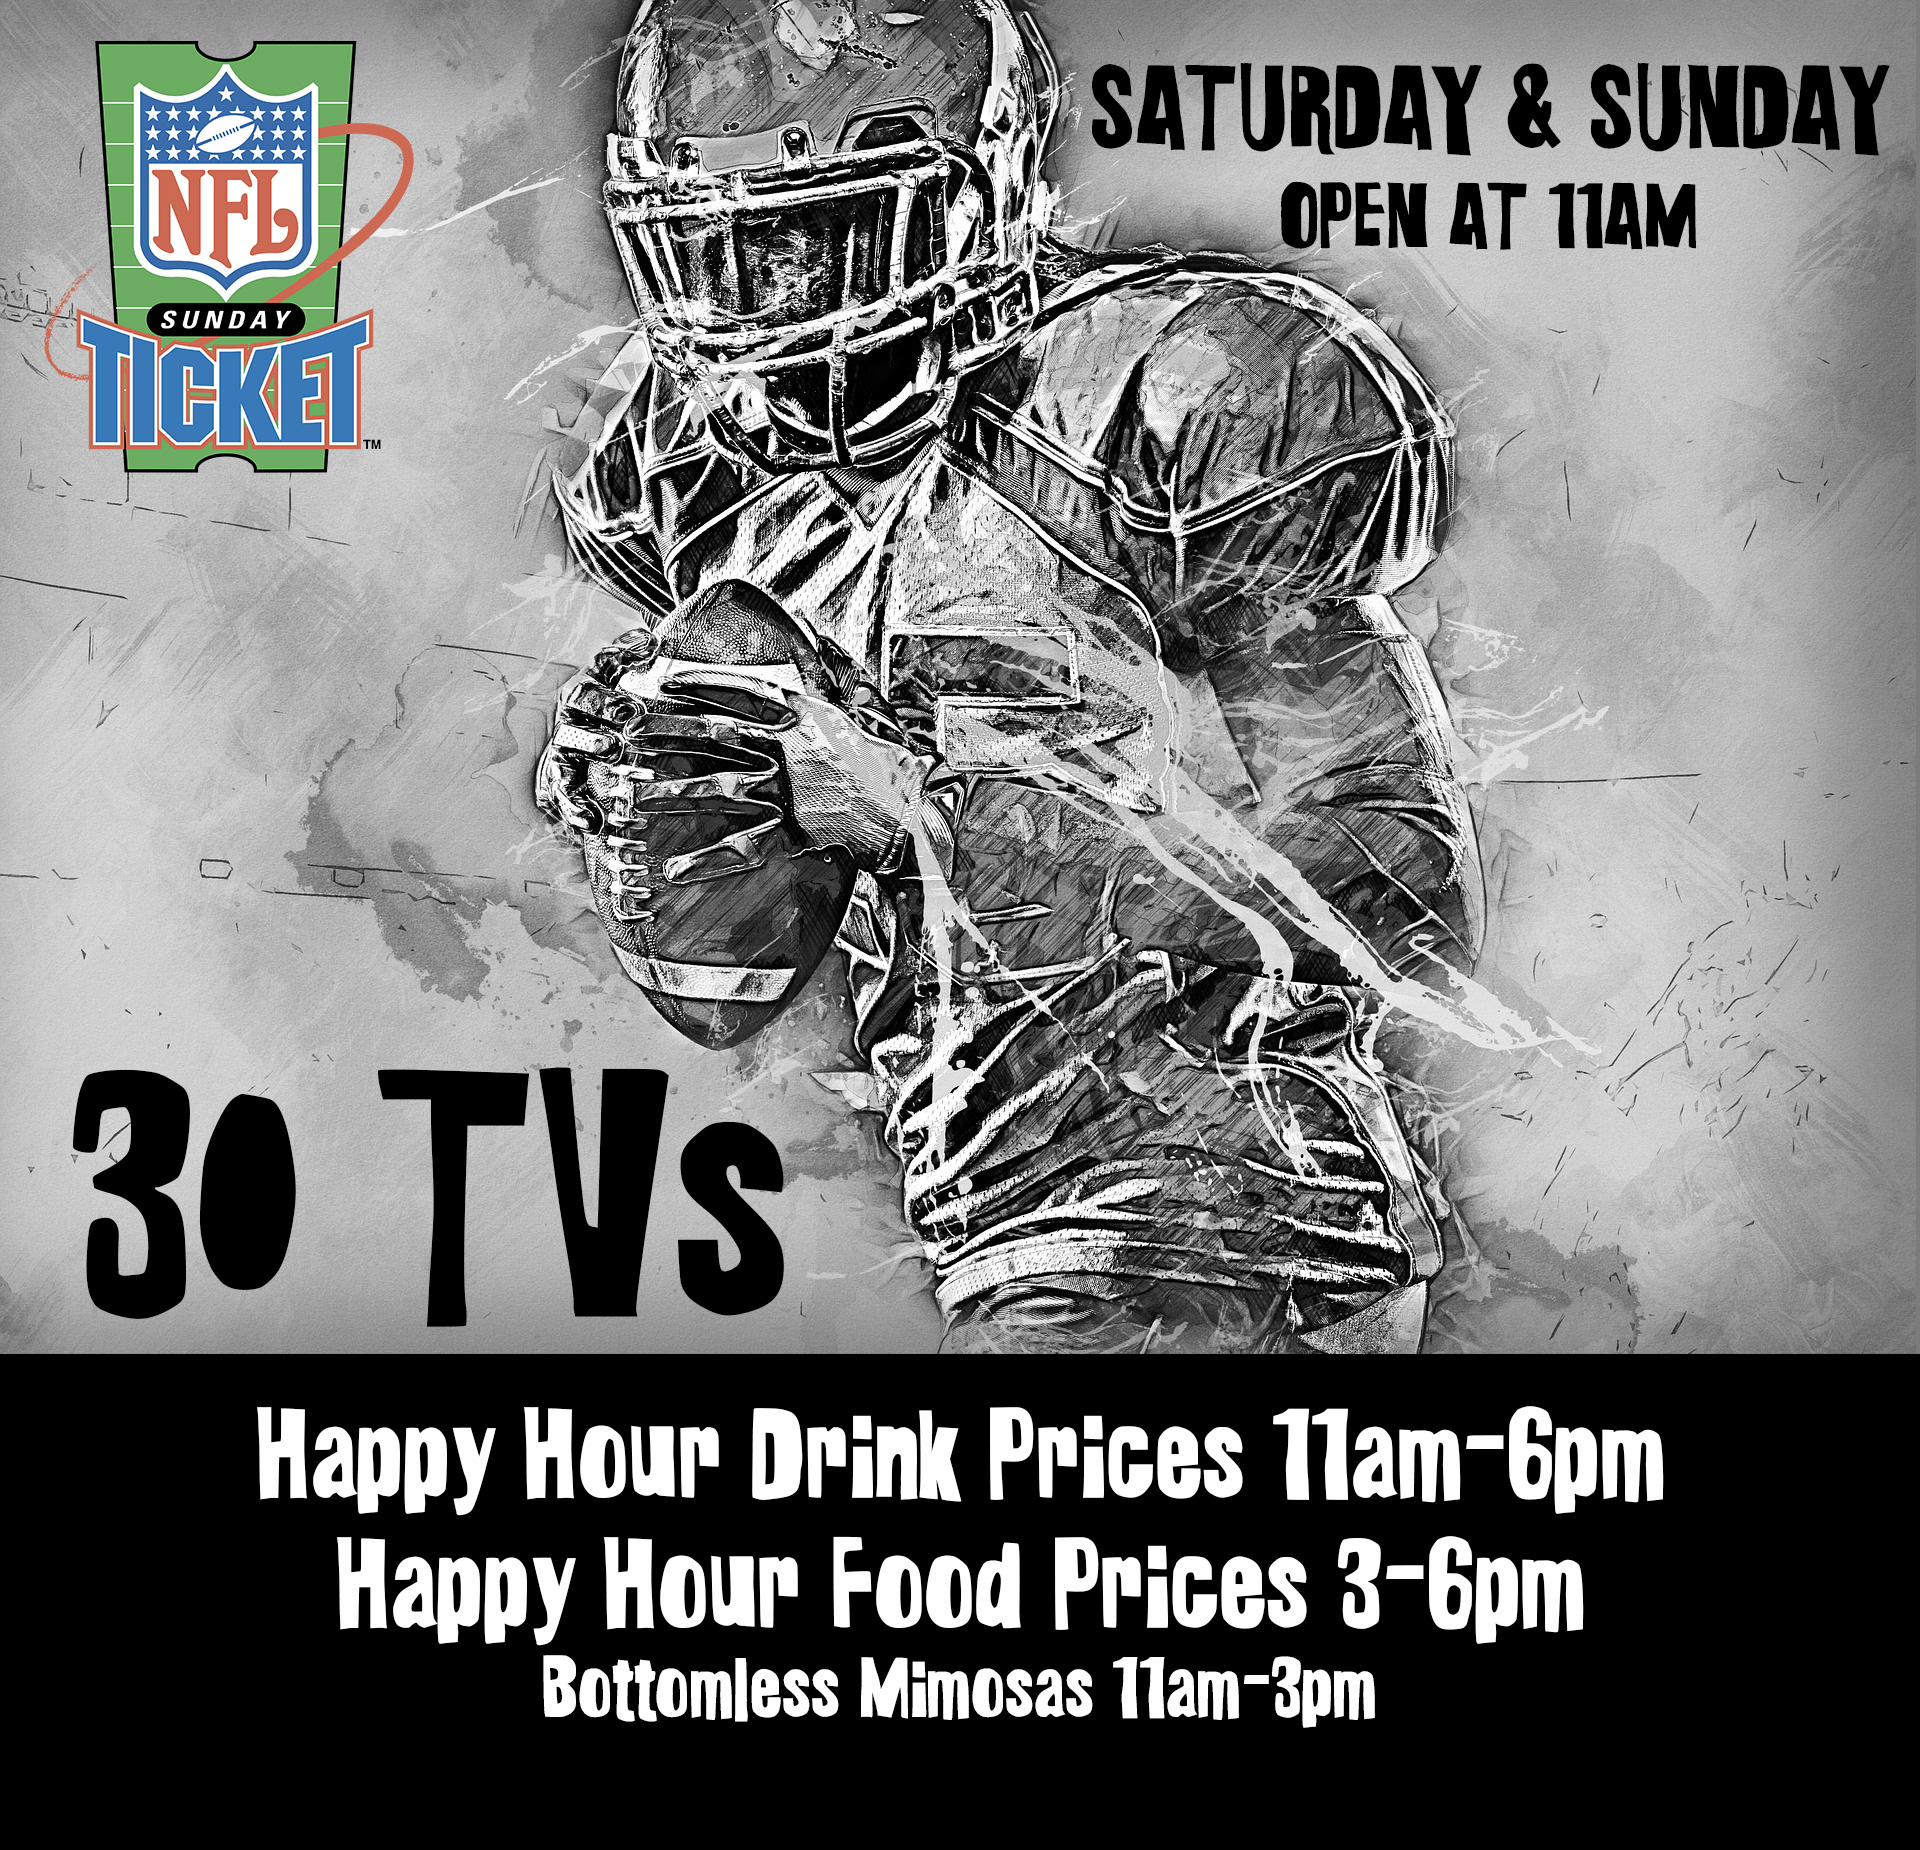 Olivers-Place-NFL-Ticket-Info-image